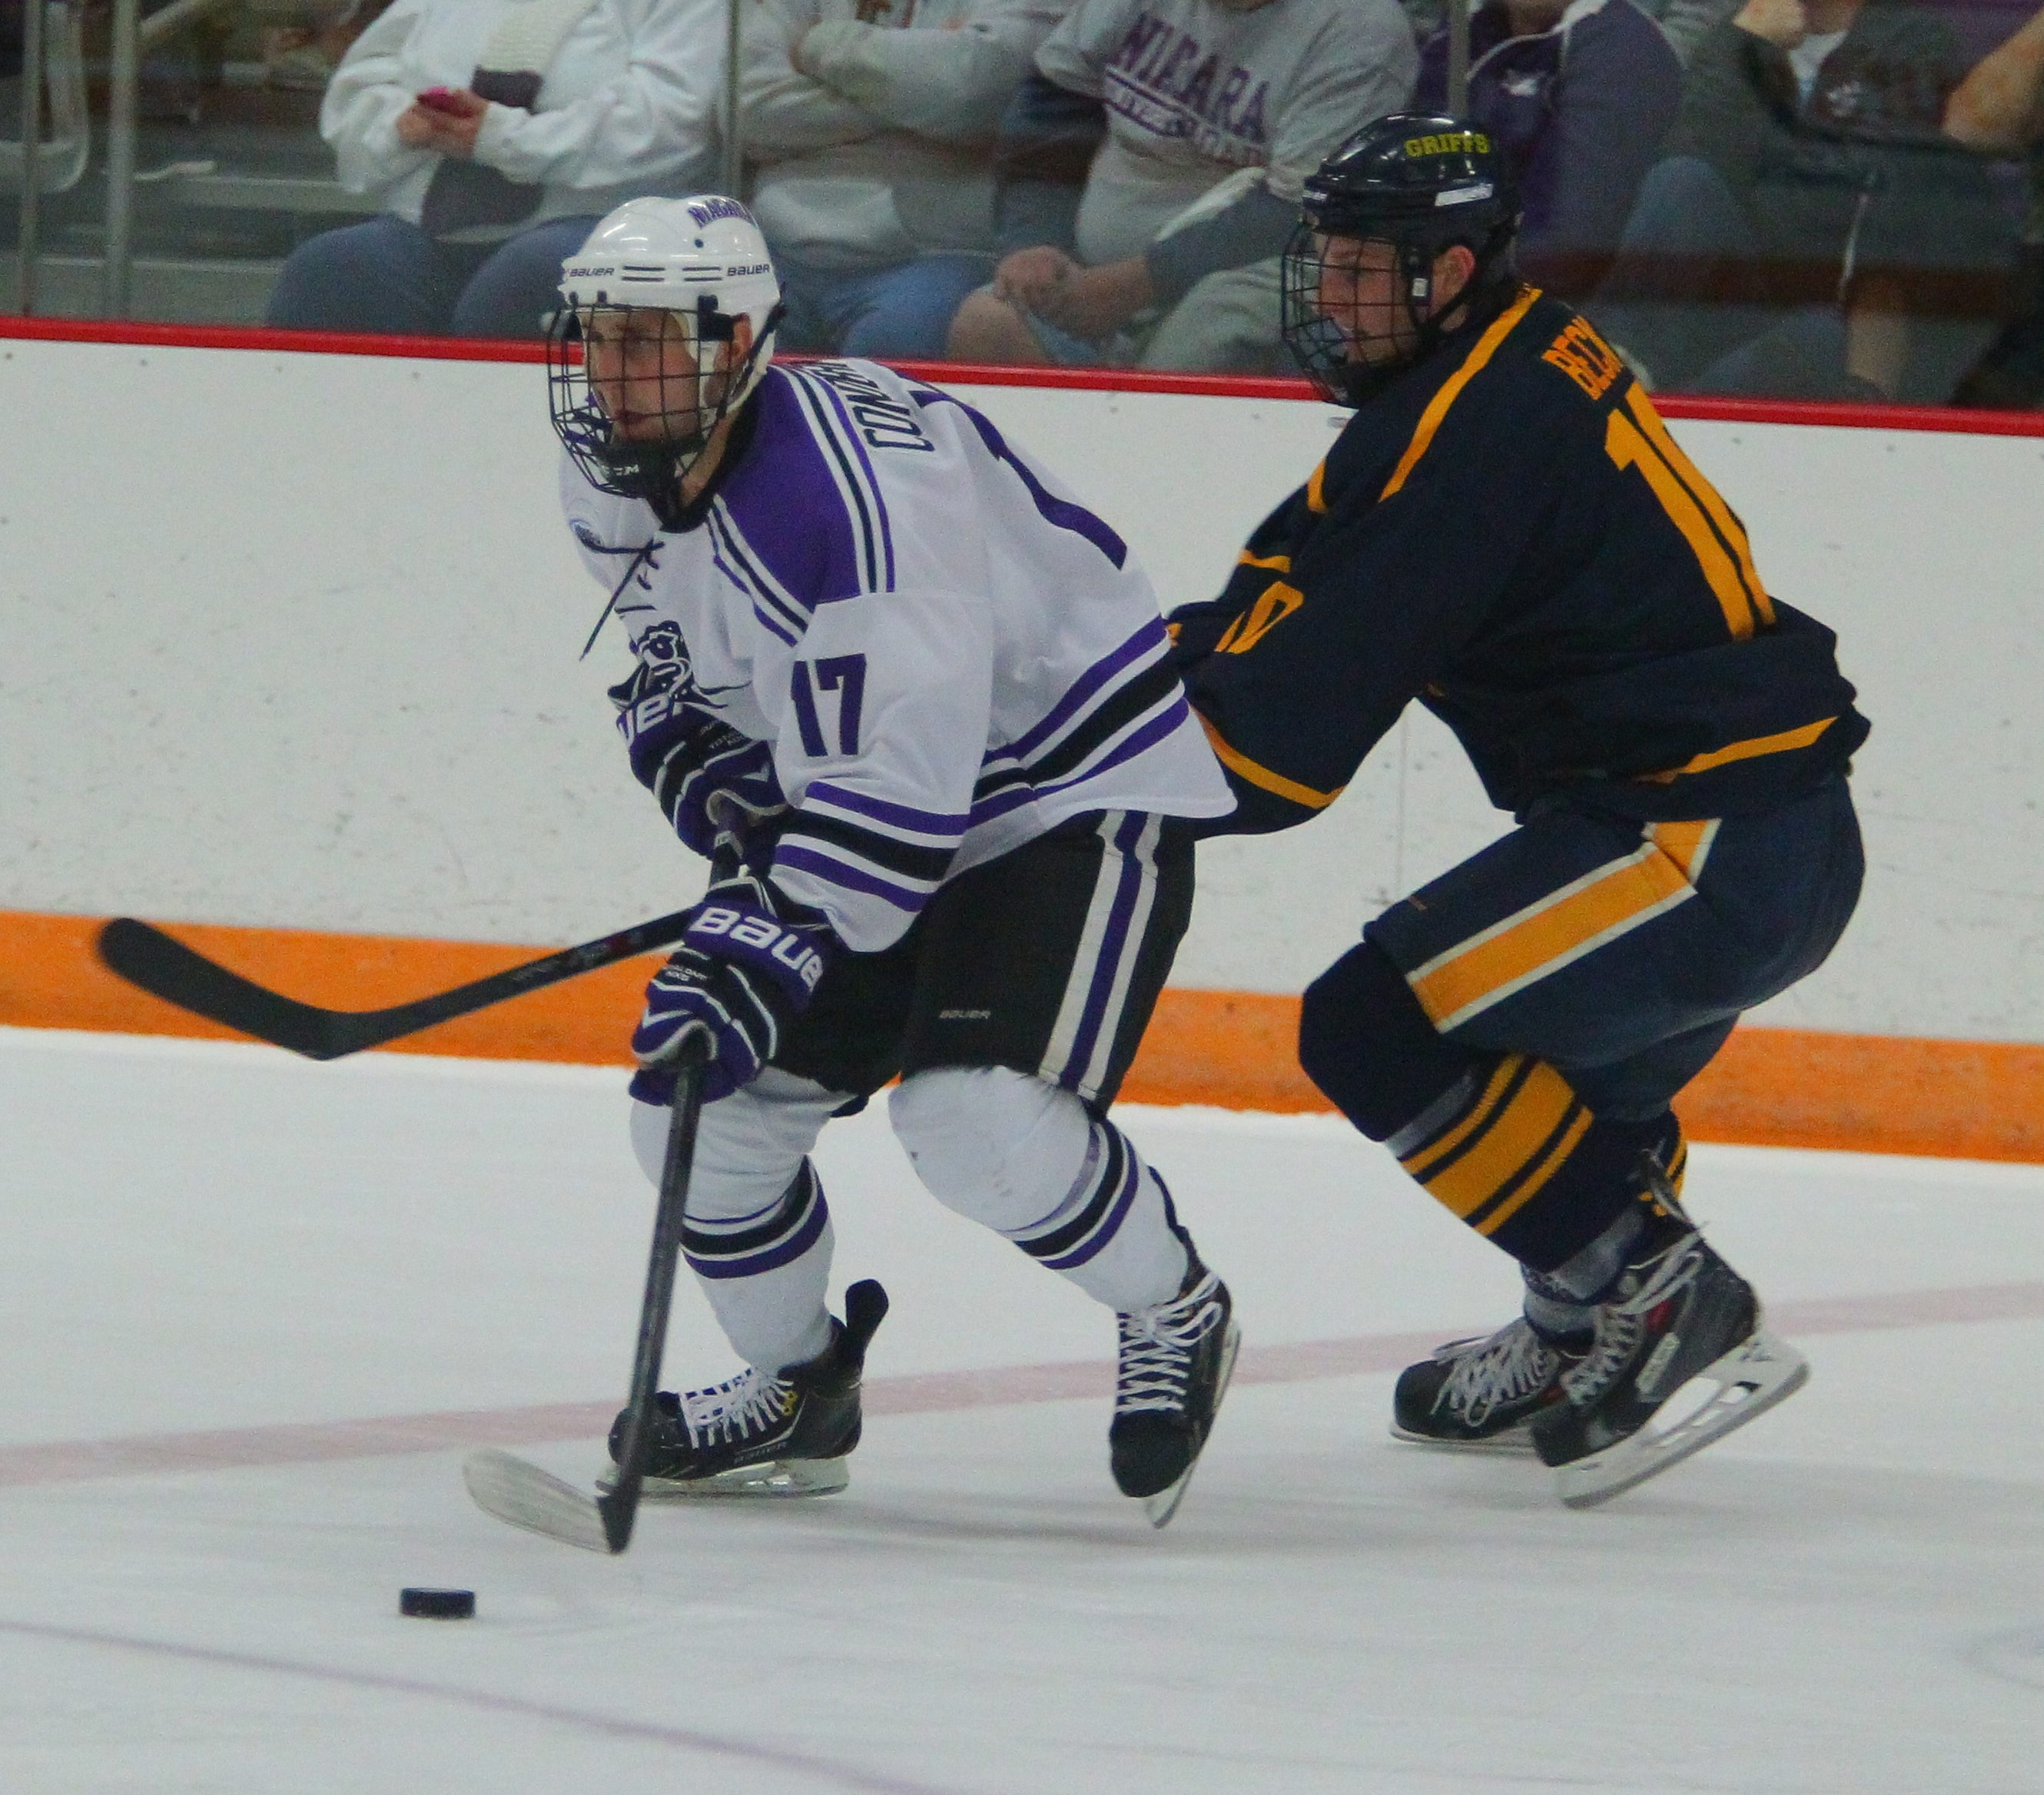 Niagara's Mike Conderman (17) will go back home to Rochester to play against RIT in an outdoor game at Frontier Field.